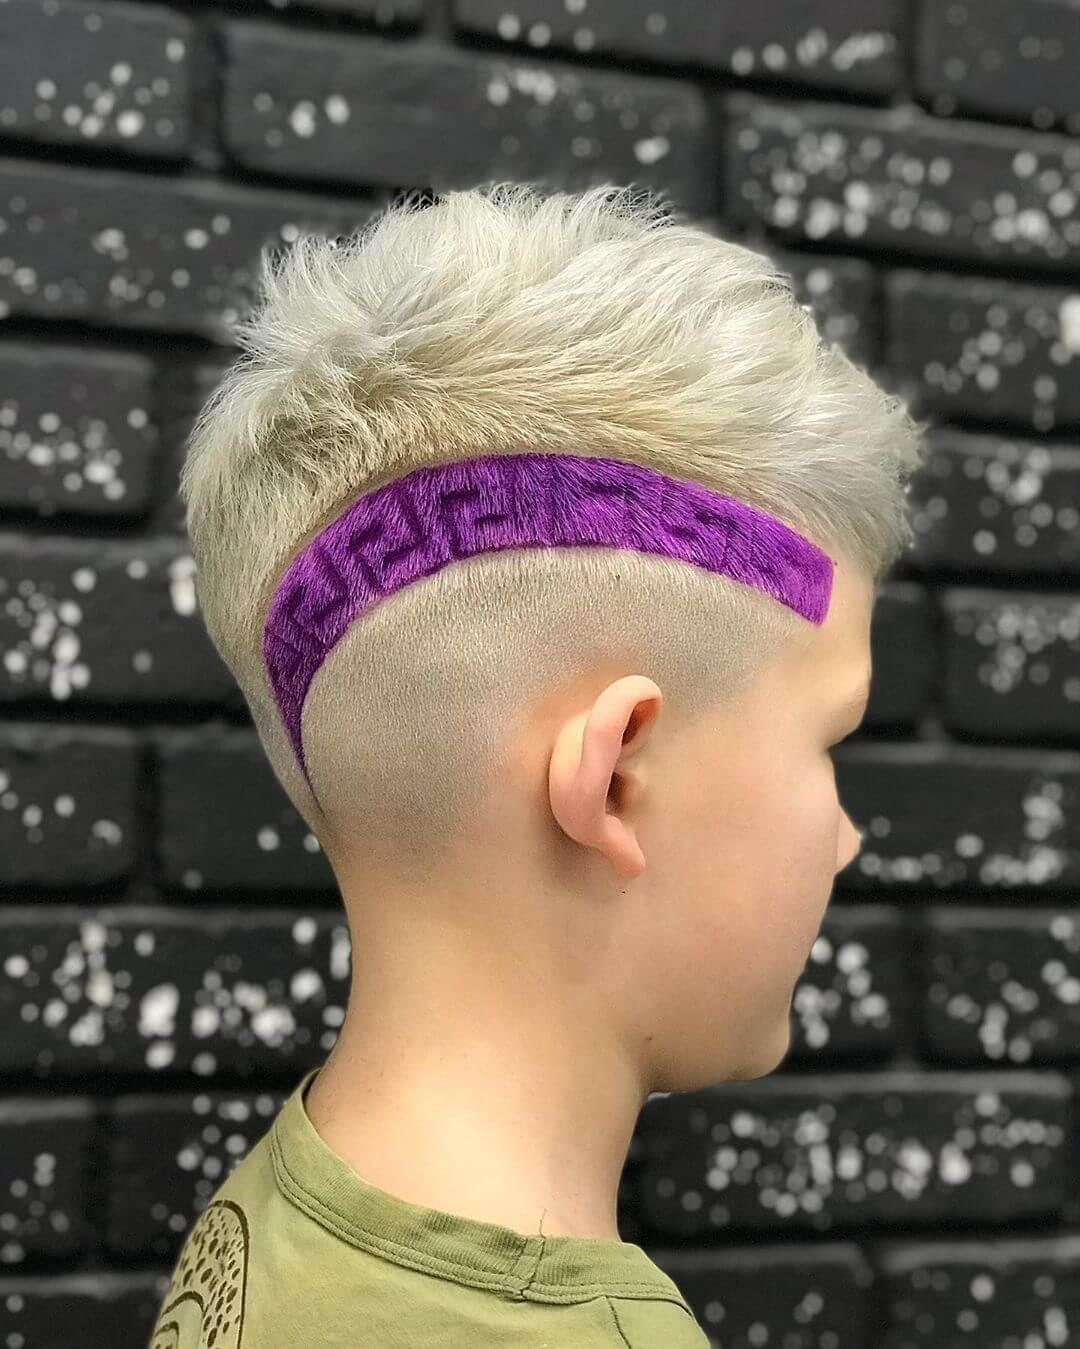 Messy Haircut with Violet Line Design for Teen Boys - side view